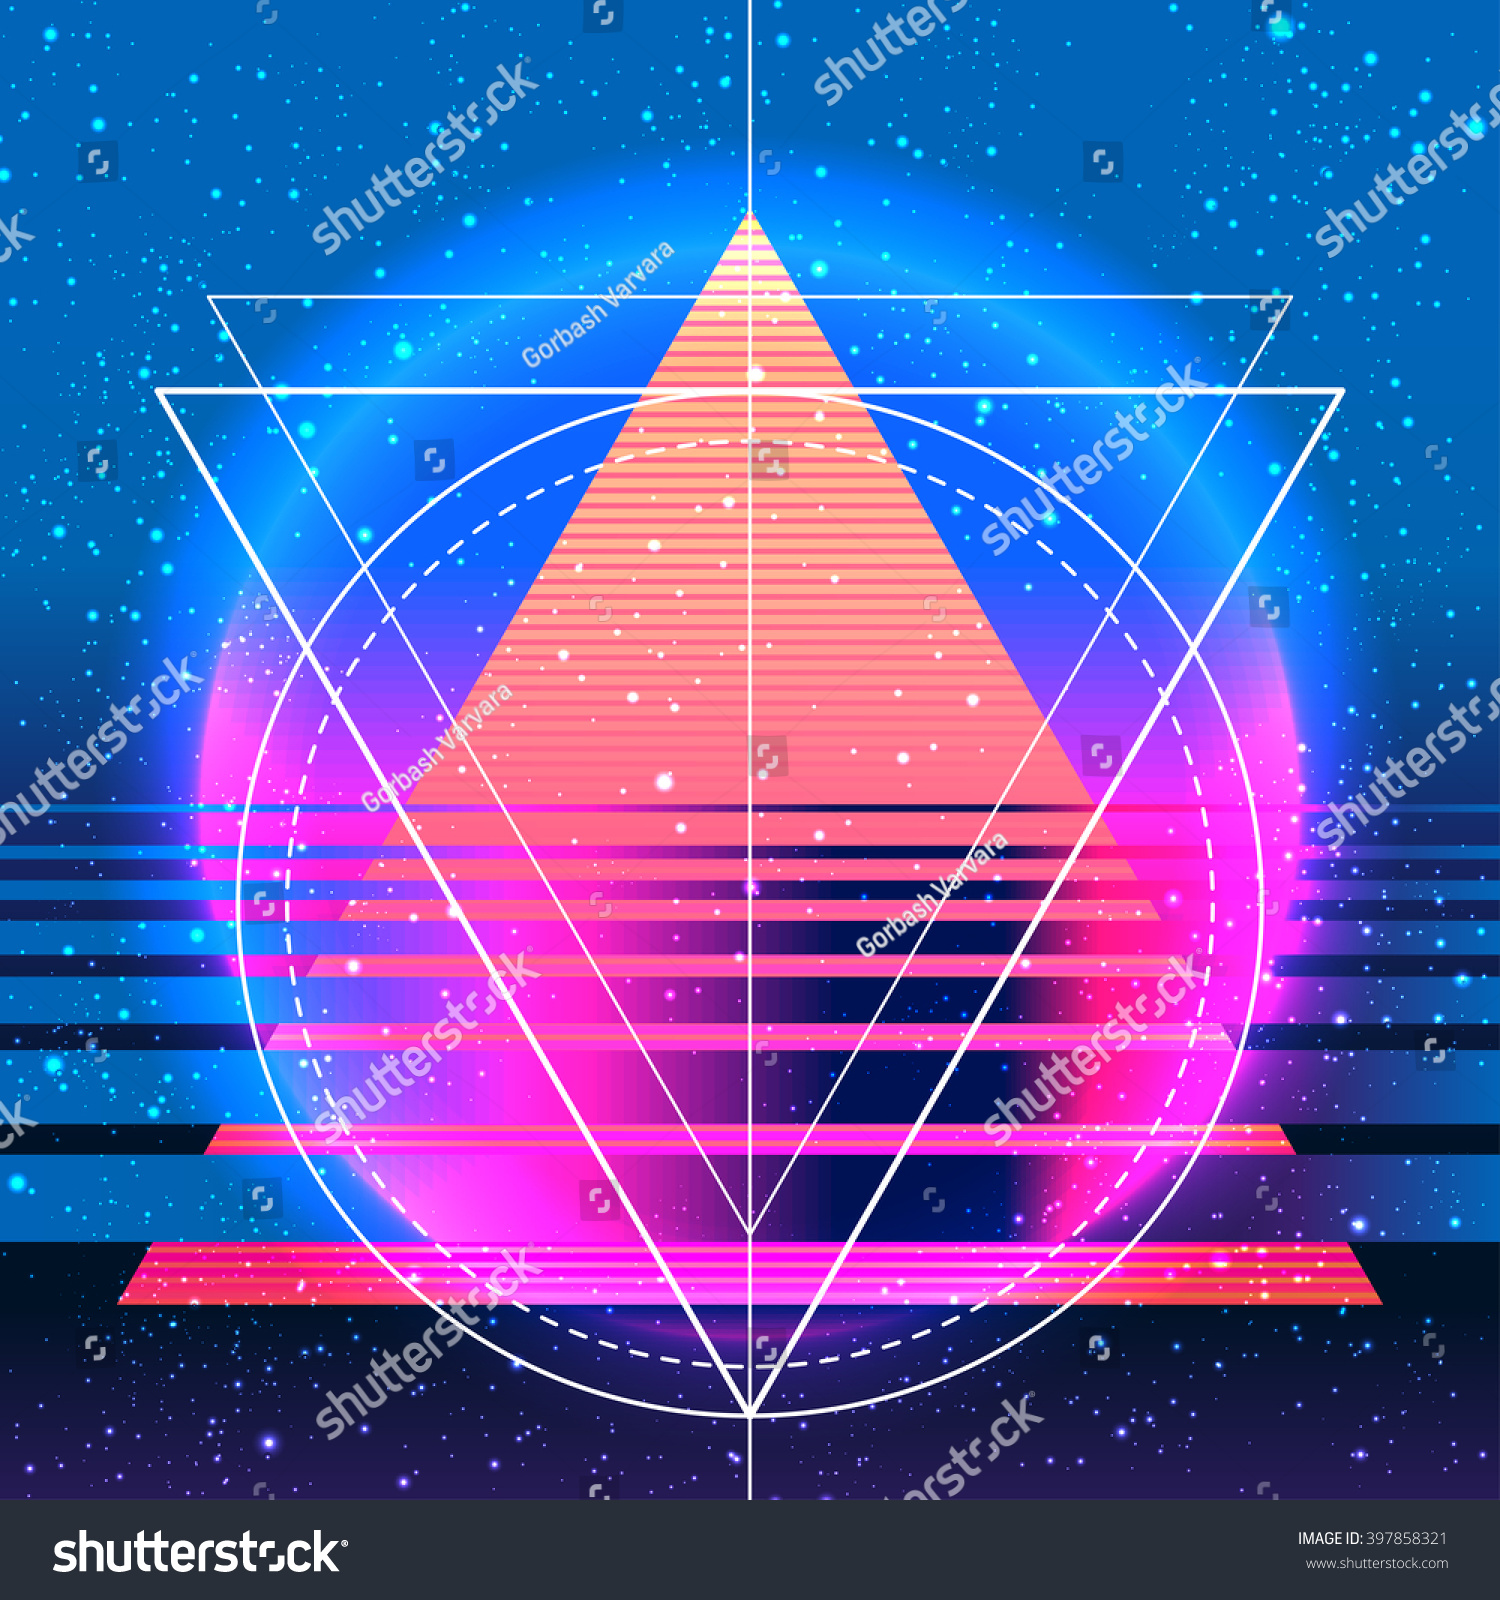 Design t shirt neon colors - Retro Vintage 80s Or 90s Geometric Style Abstract Background Good Design For Textile T